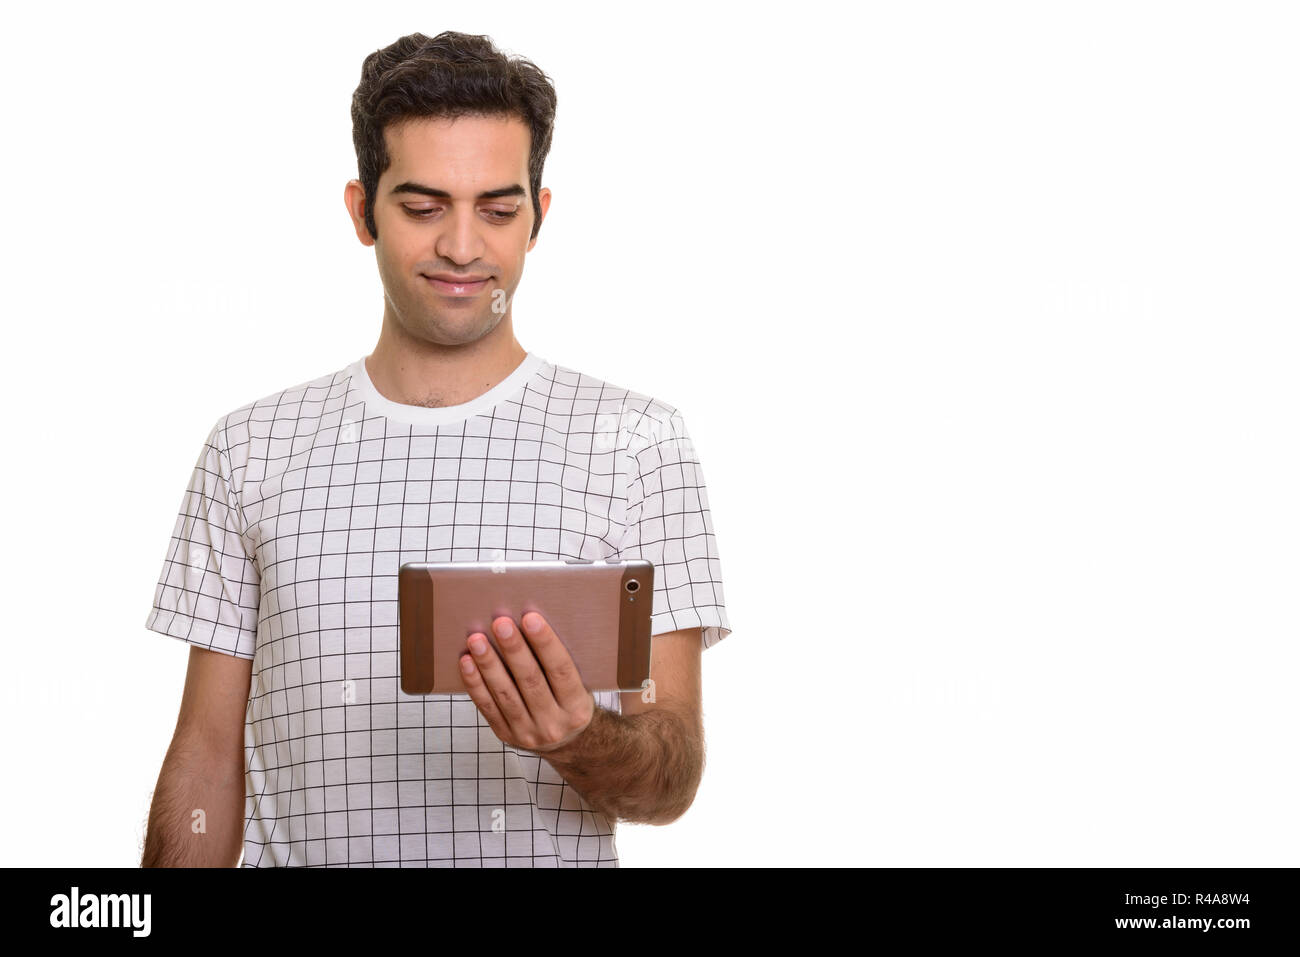 Portrait of young Persian man holding digital tablet - Stock Image